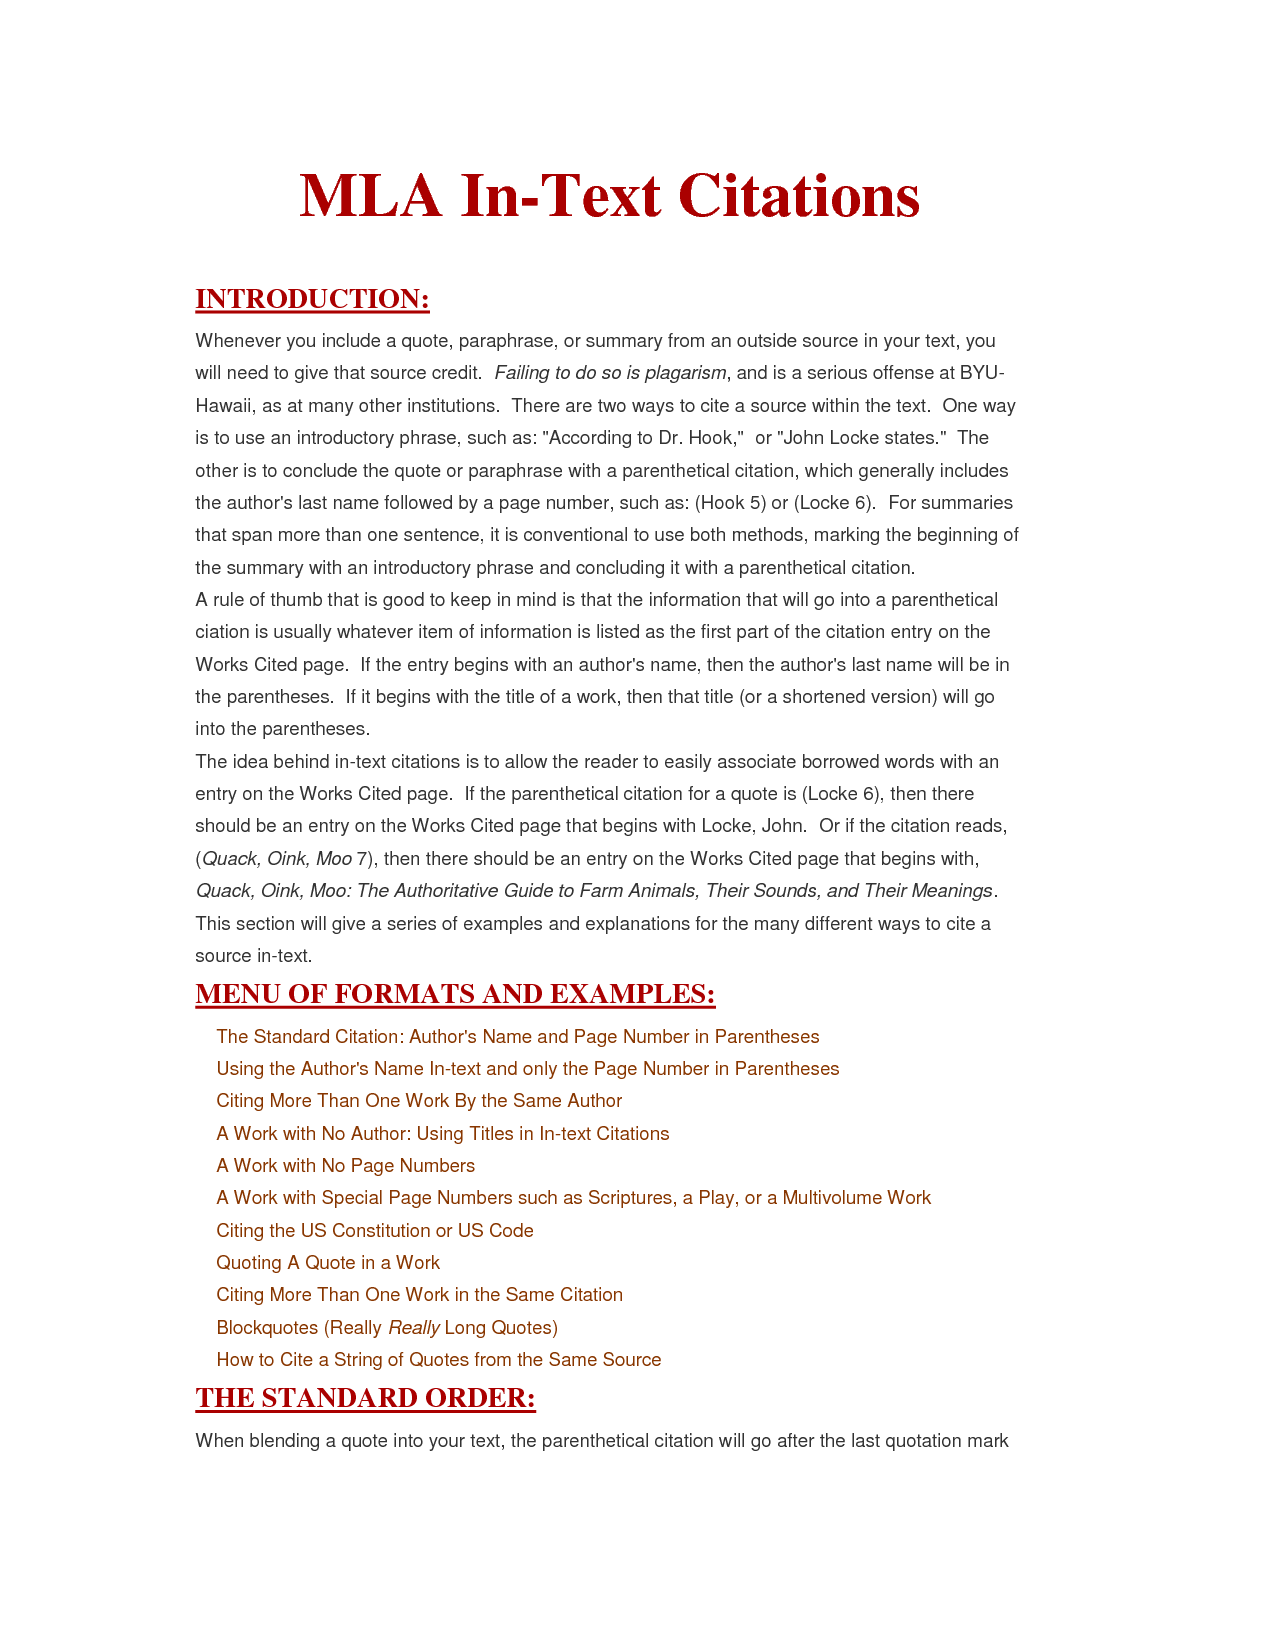 014 Essay Example Mla Citation Format Mersn Proforum Co Examples In Essays Apa How To Cite An Within Breathtaking A Book Article Reprinted From Full